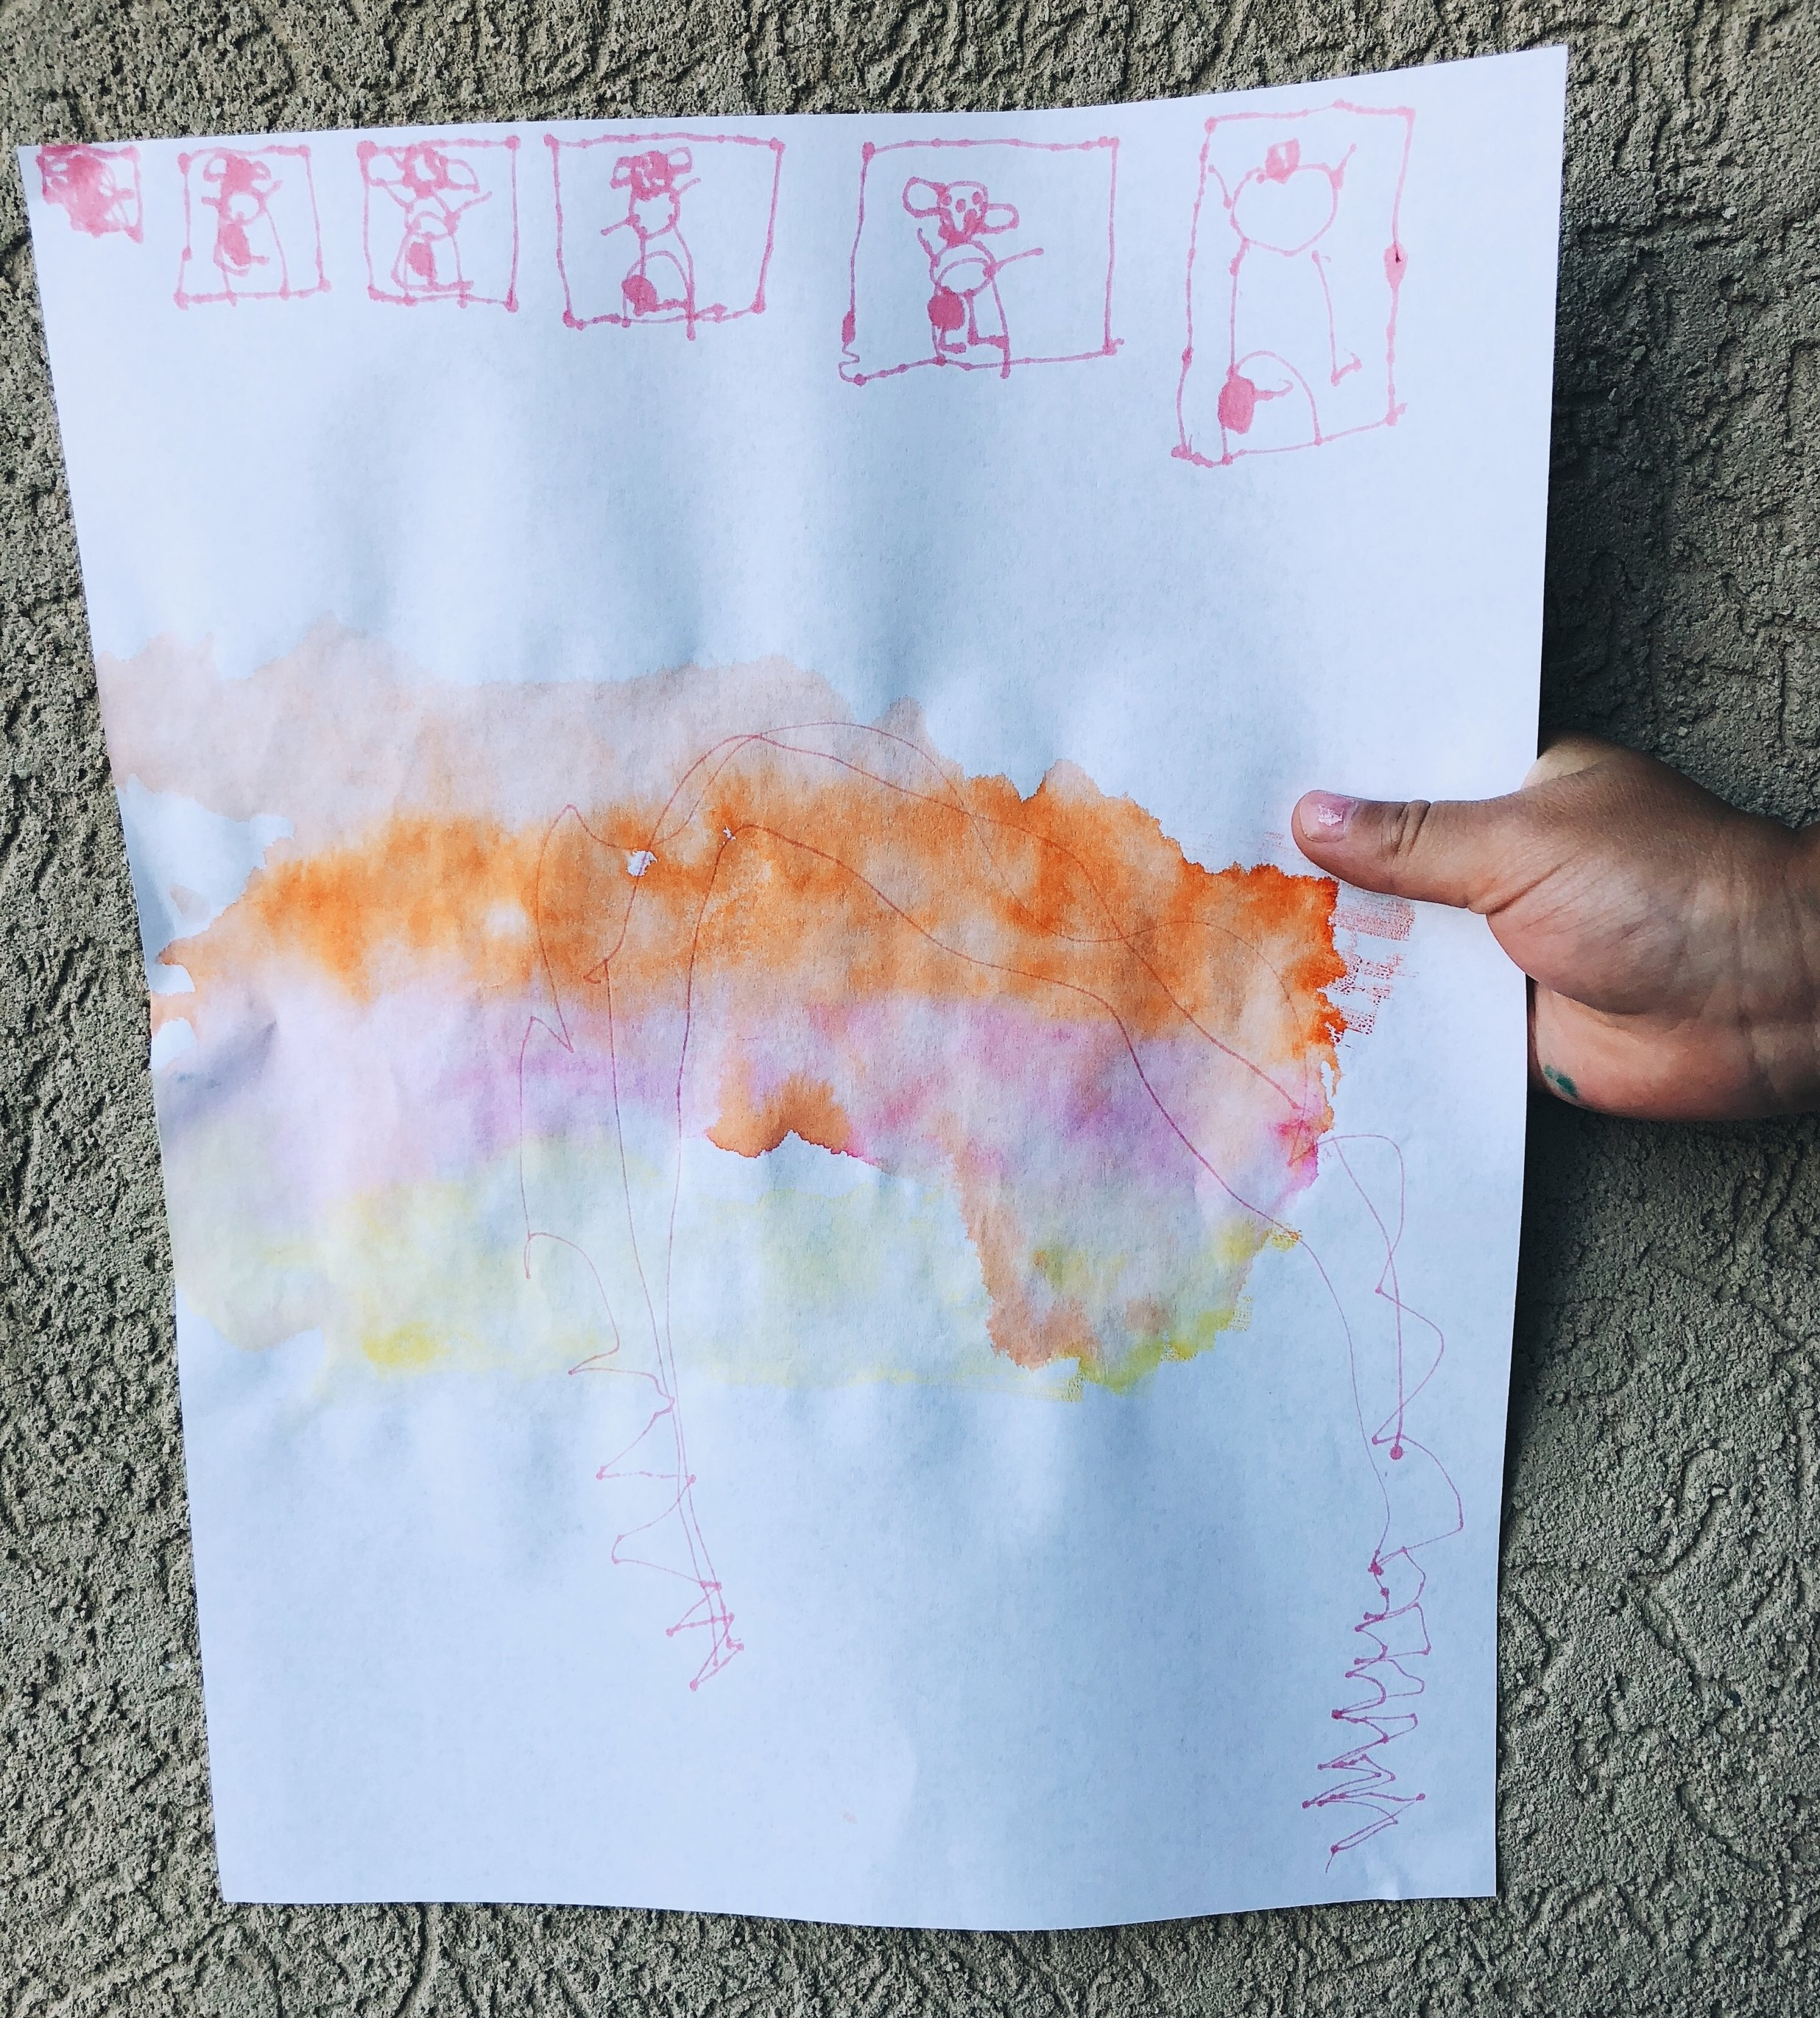 marker water colors first and then 3 year old's drawing of a mountain with people in their homes above.